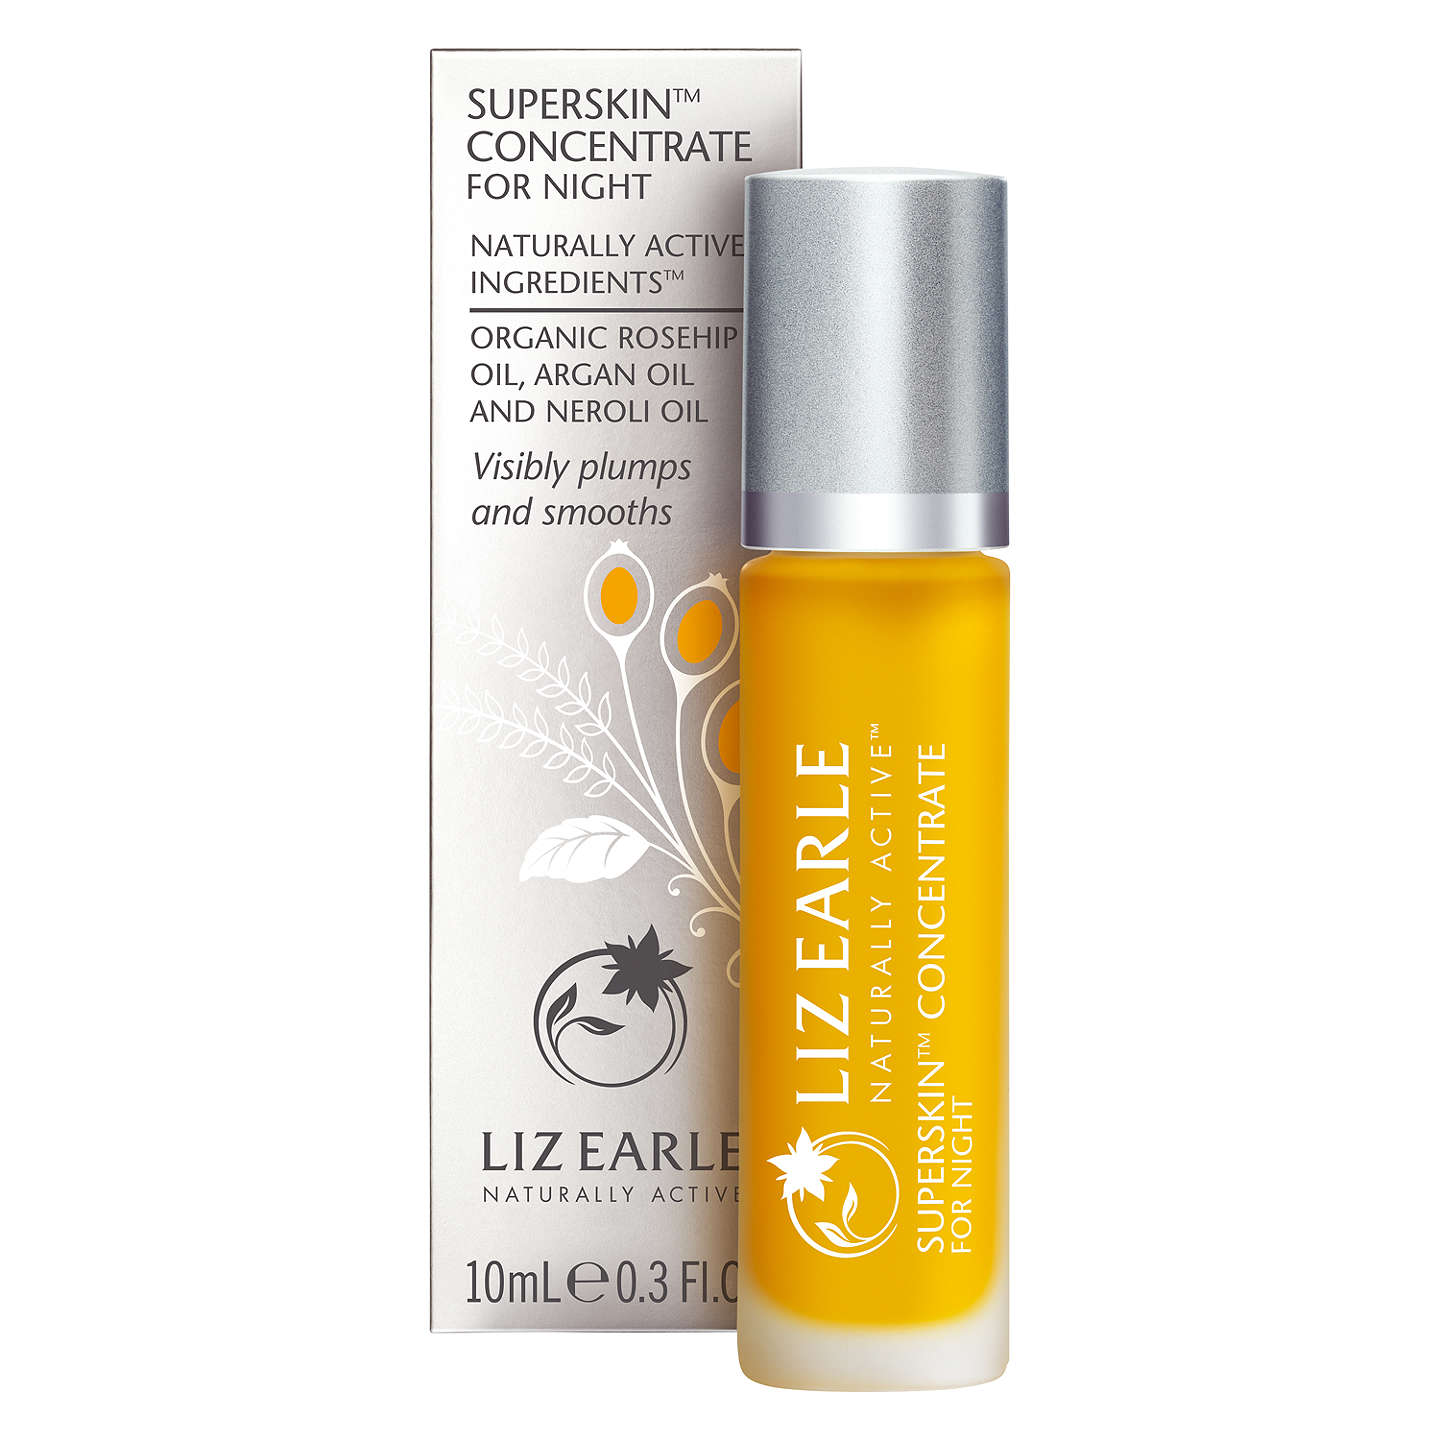 BuyLiz Earle Superskin™ Concentrate for Night, 10ml Online at johnlewis.com